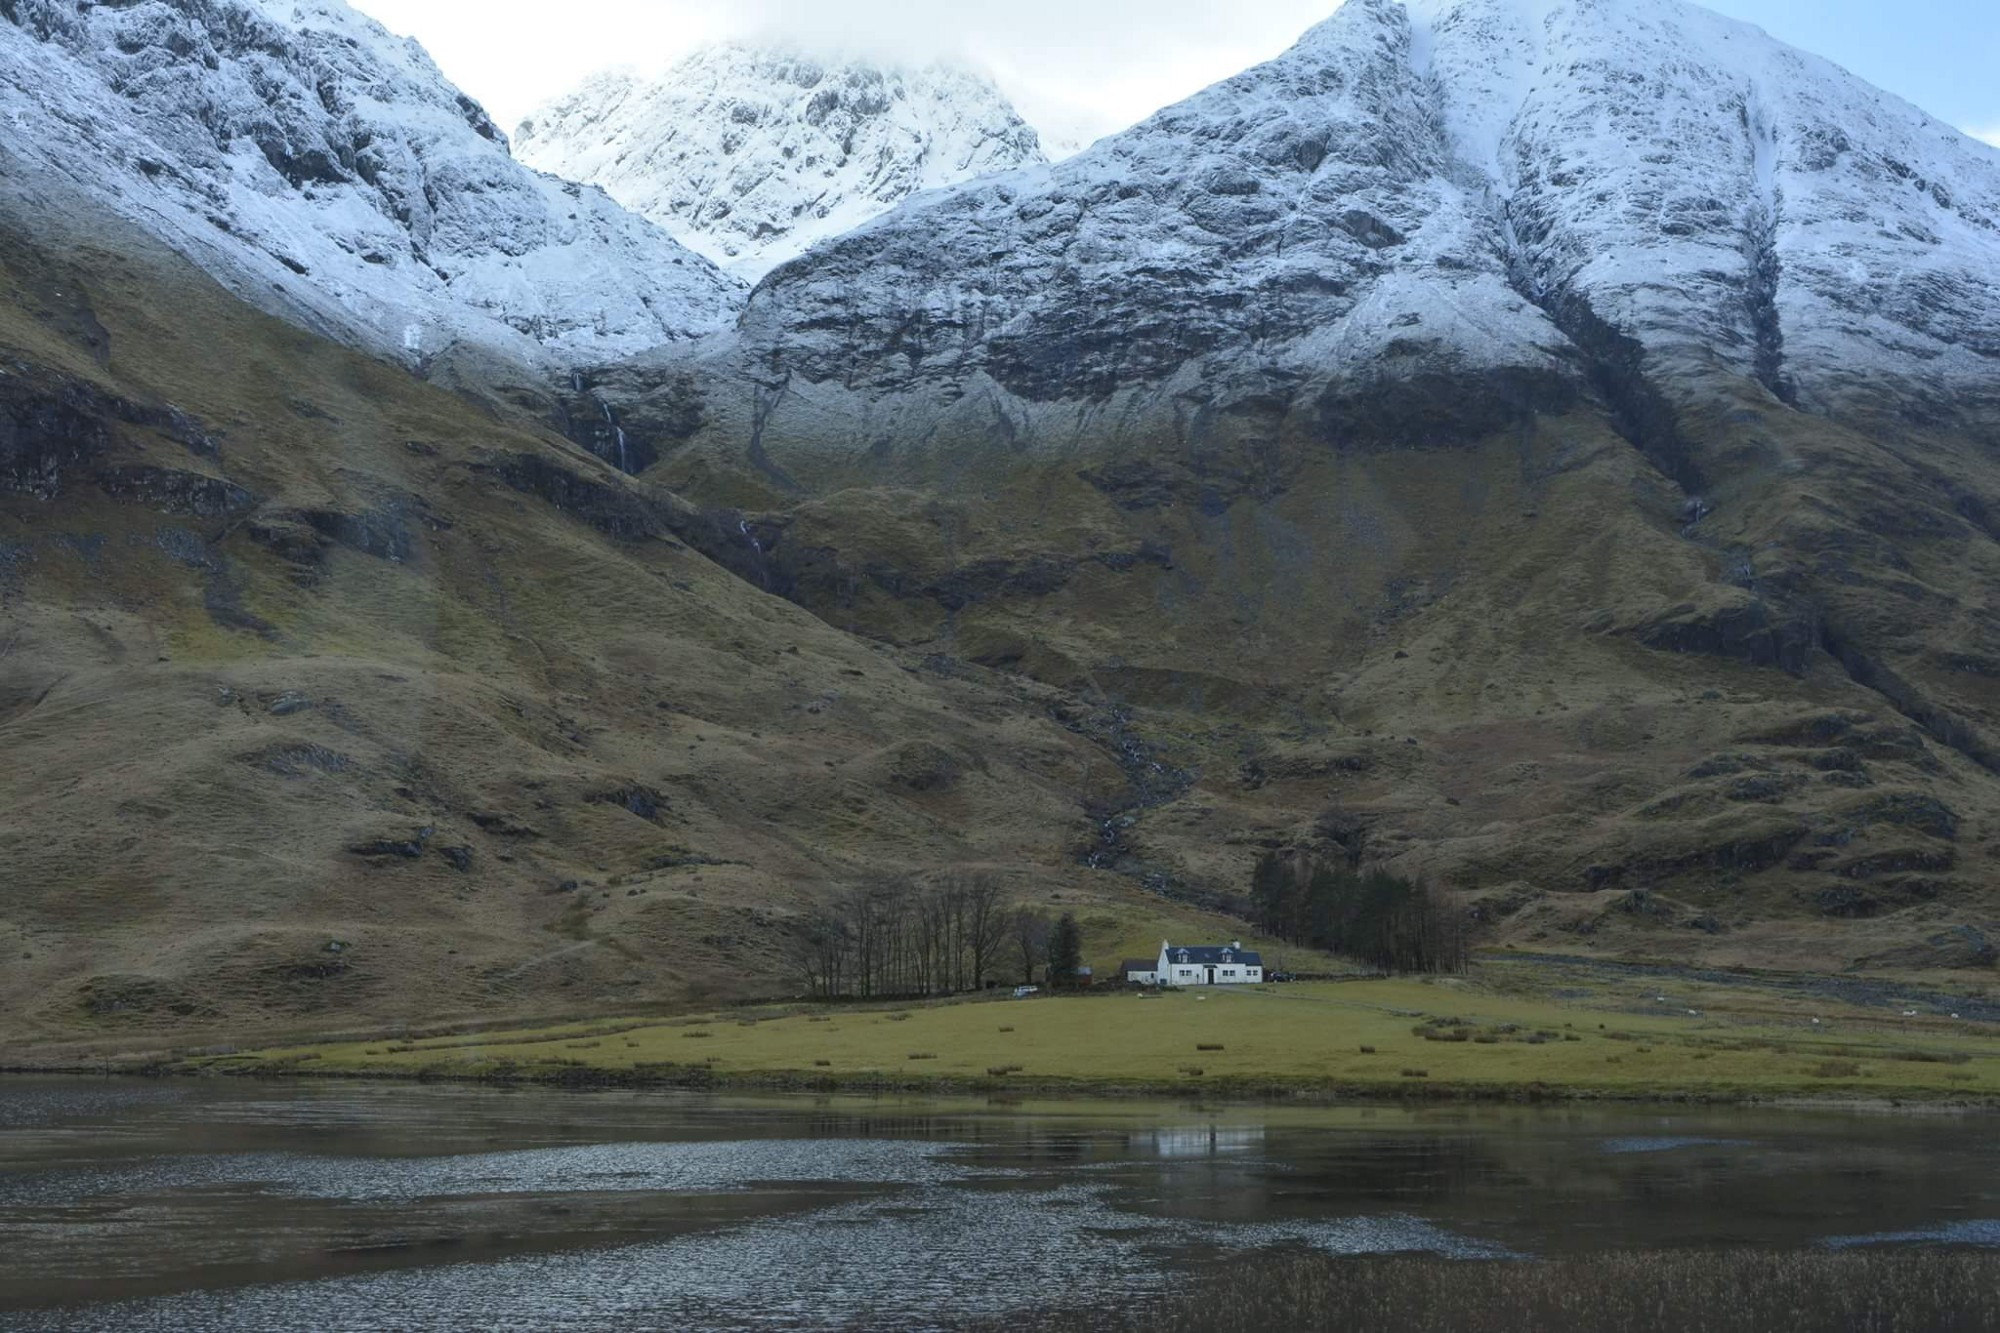 Scotland's mountains and valleys, with a small cottage in the wilderness